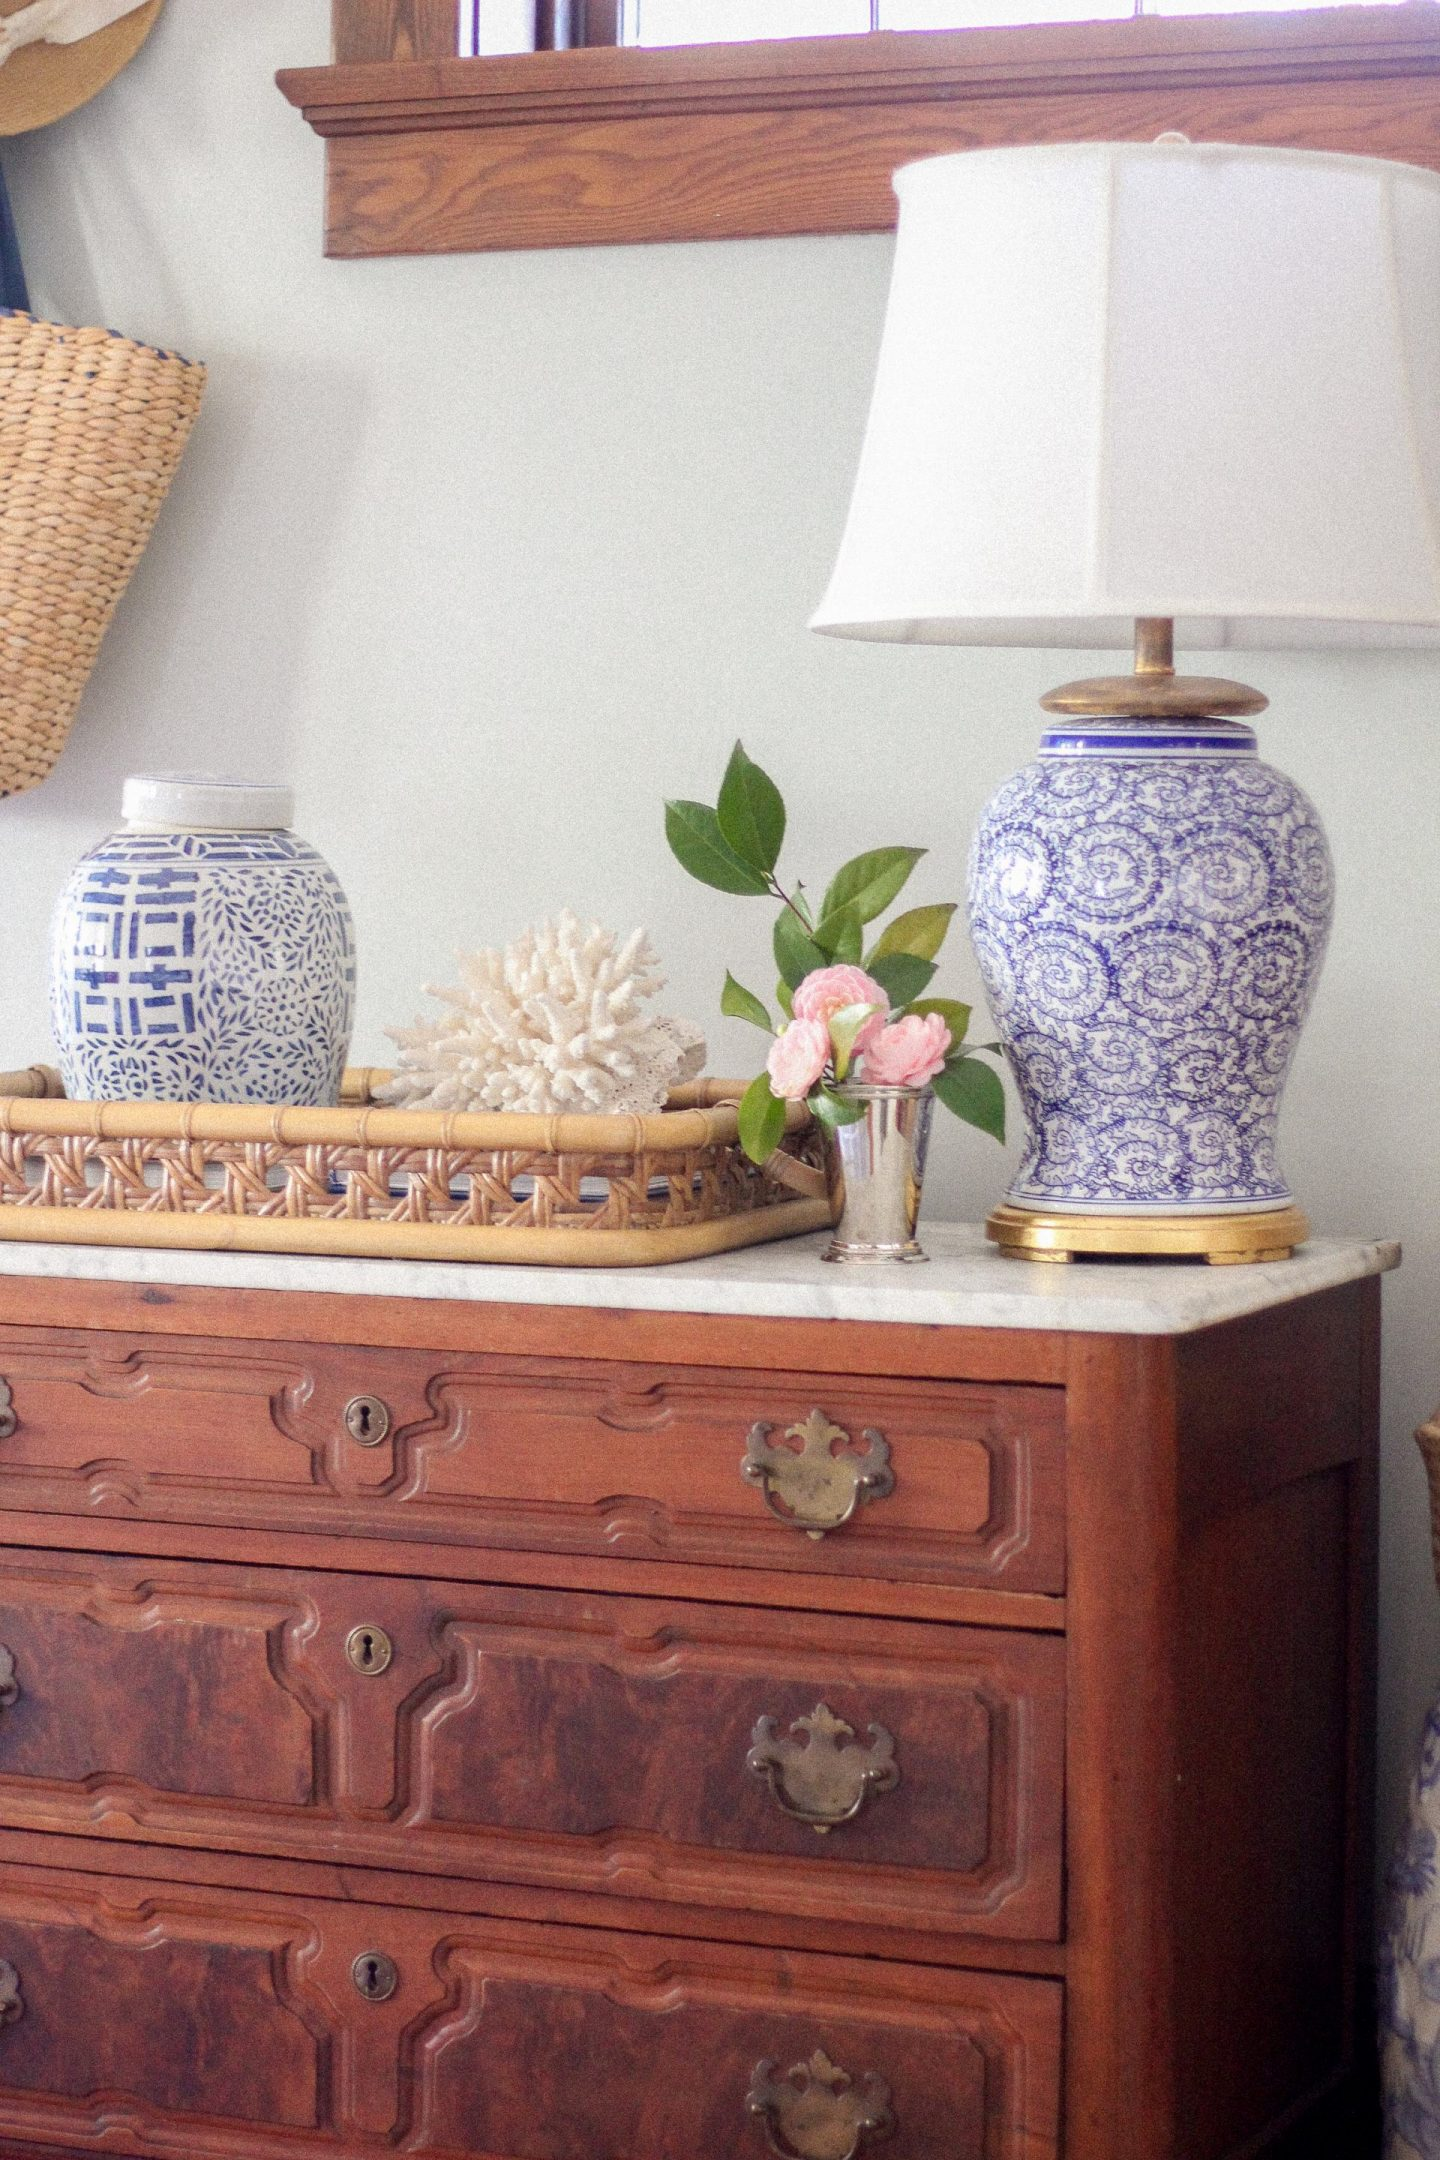 How to Find Great Pieces Online and In Thrift Stores